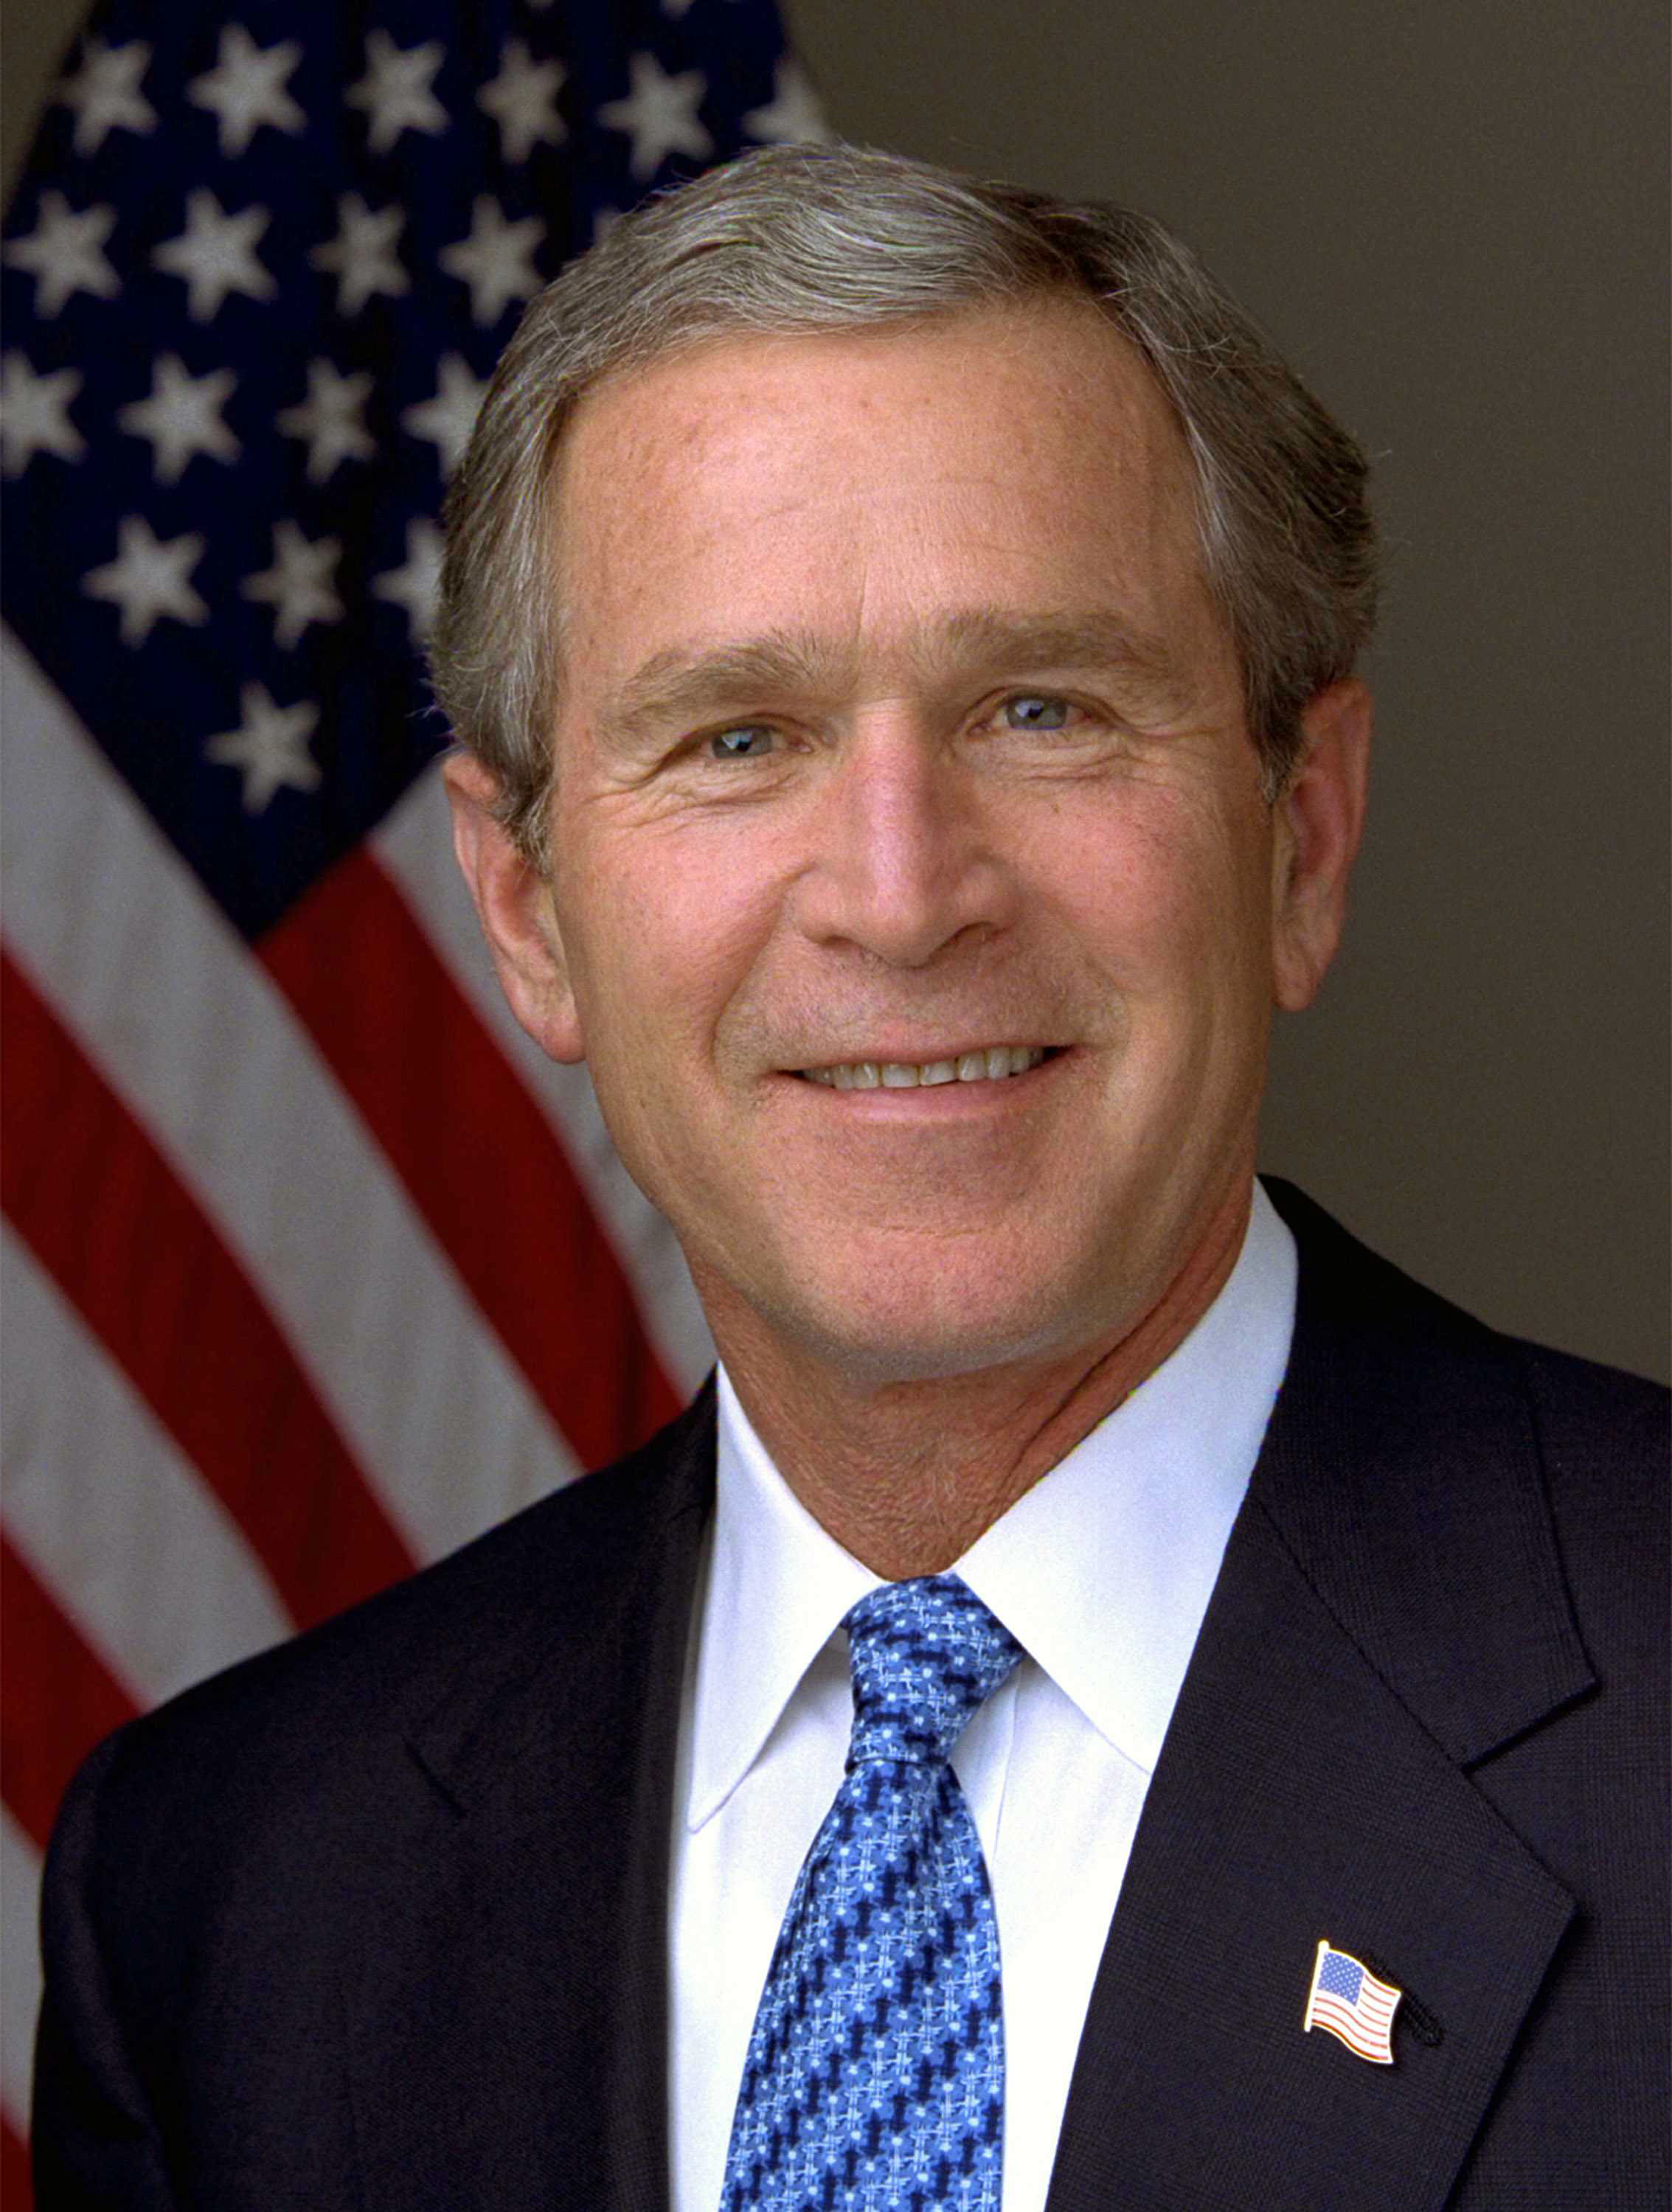 Portrait of George W. Bush